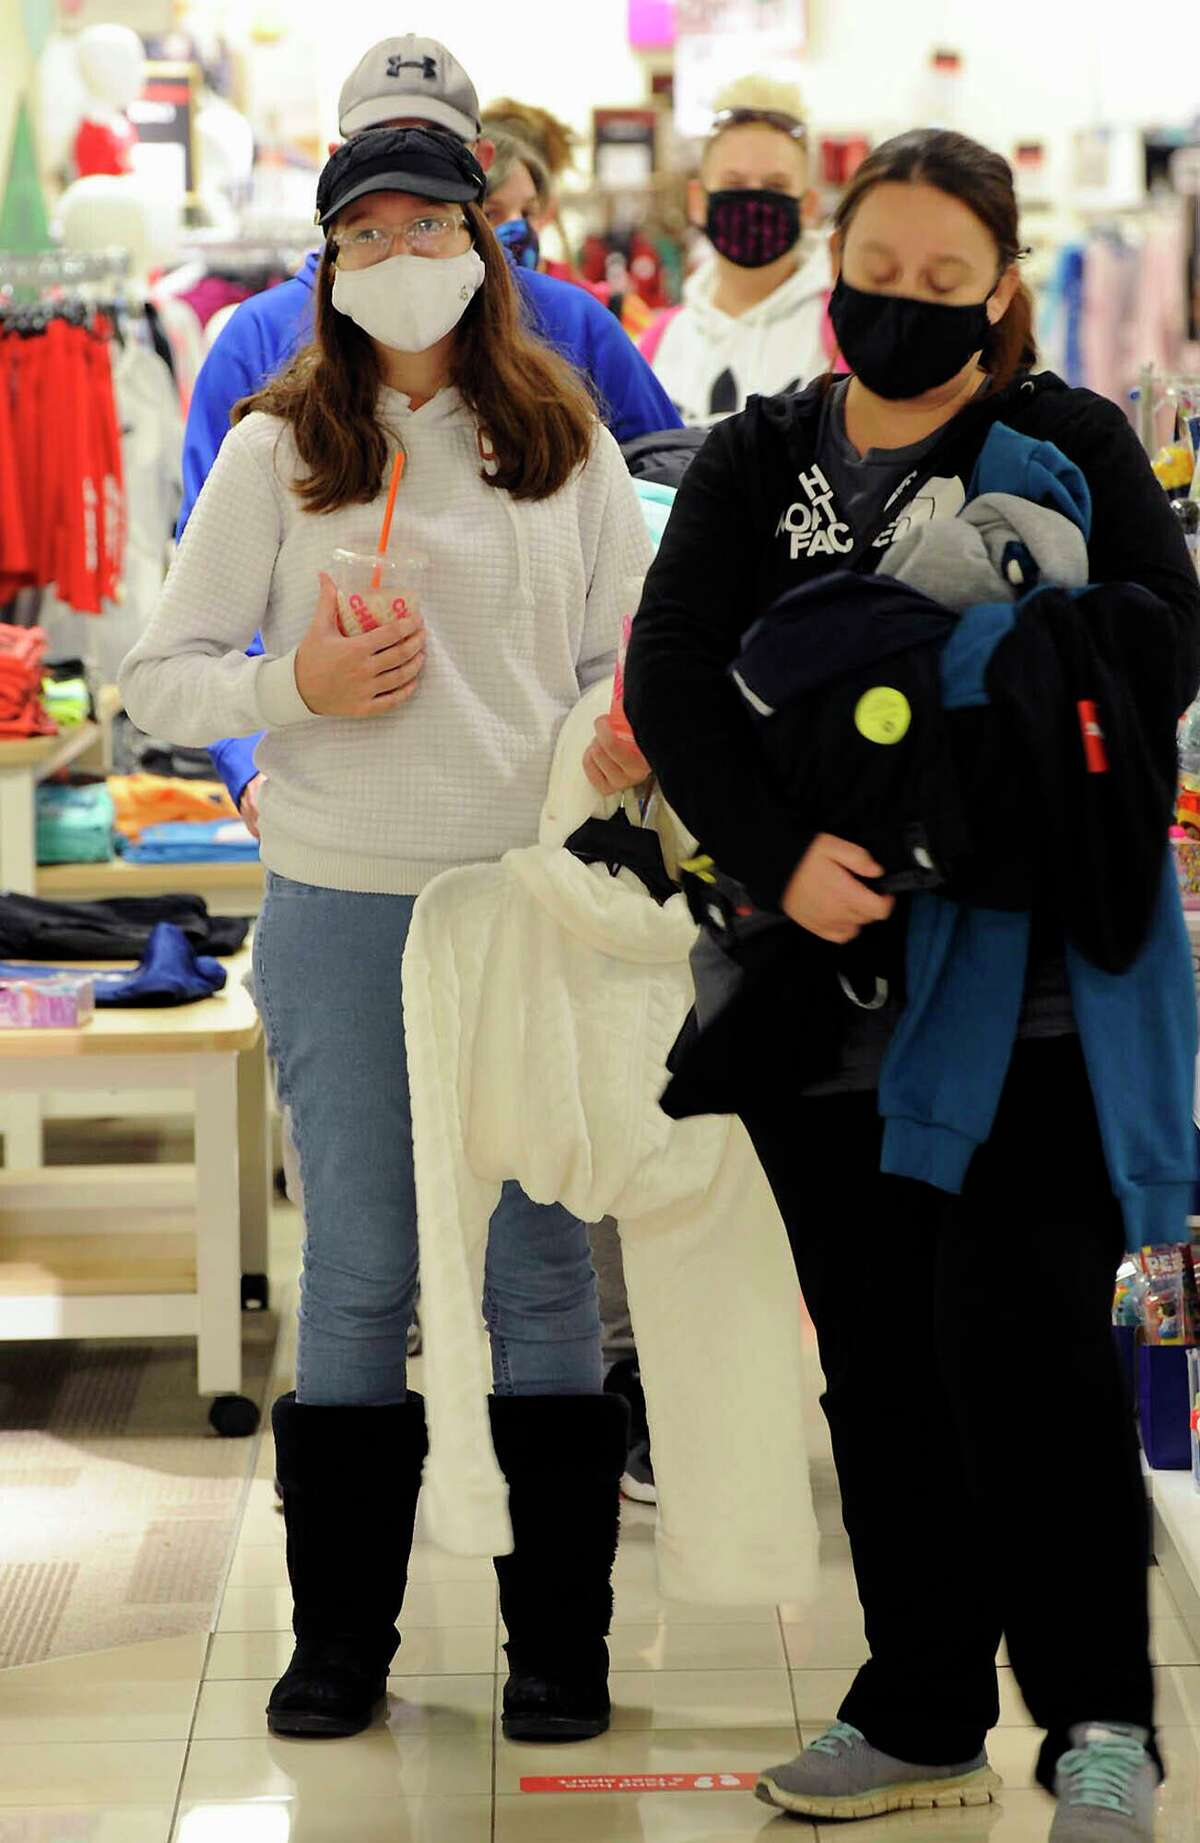 Shoppers wait in line at a JC Penney store in the Wyoming Valley Mall on Black Friday, in Wilkes-Barre, Pa., Friday Nov. 27, 2020. (Mark Moran/The Citizens' Voice via AP)